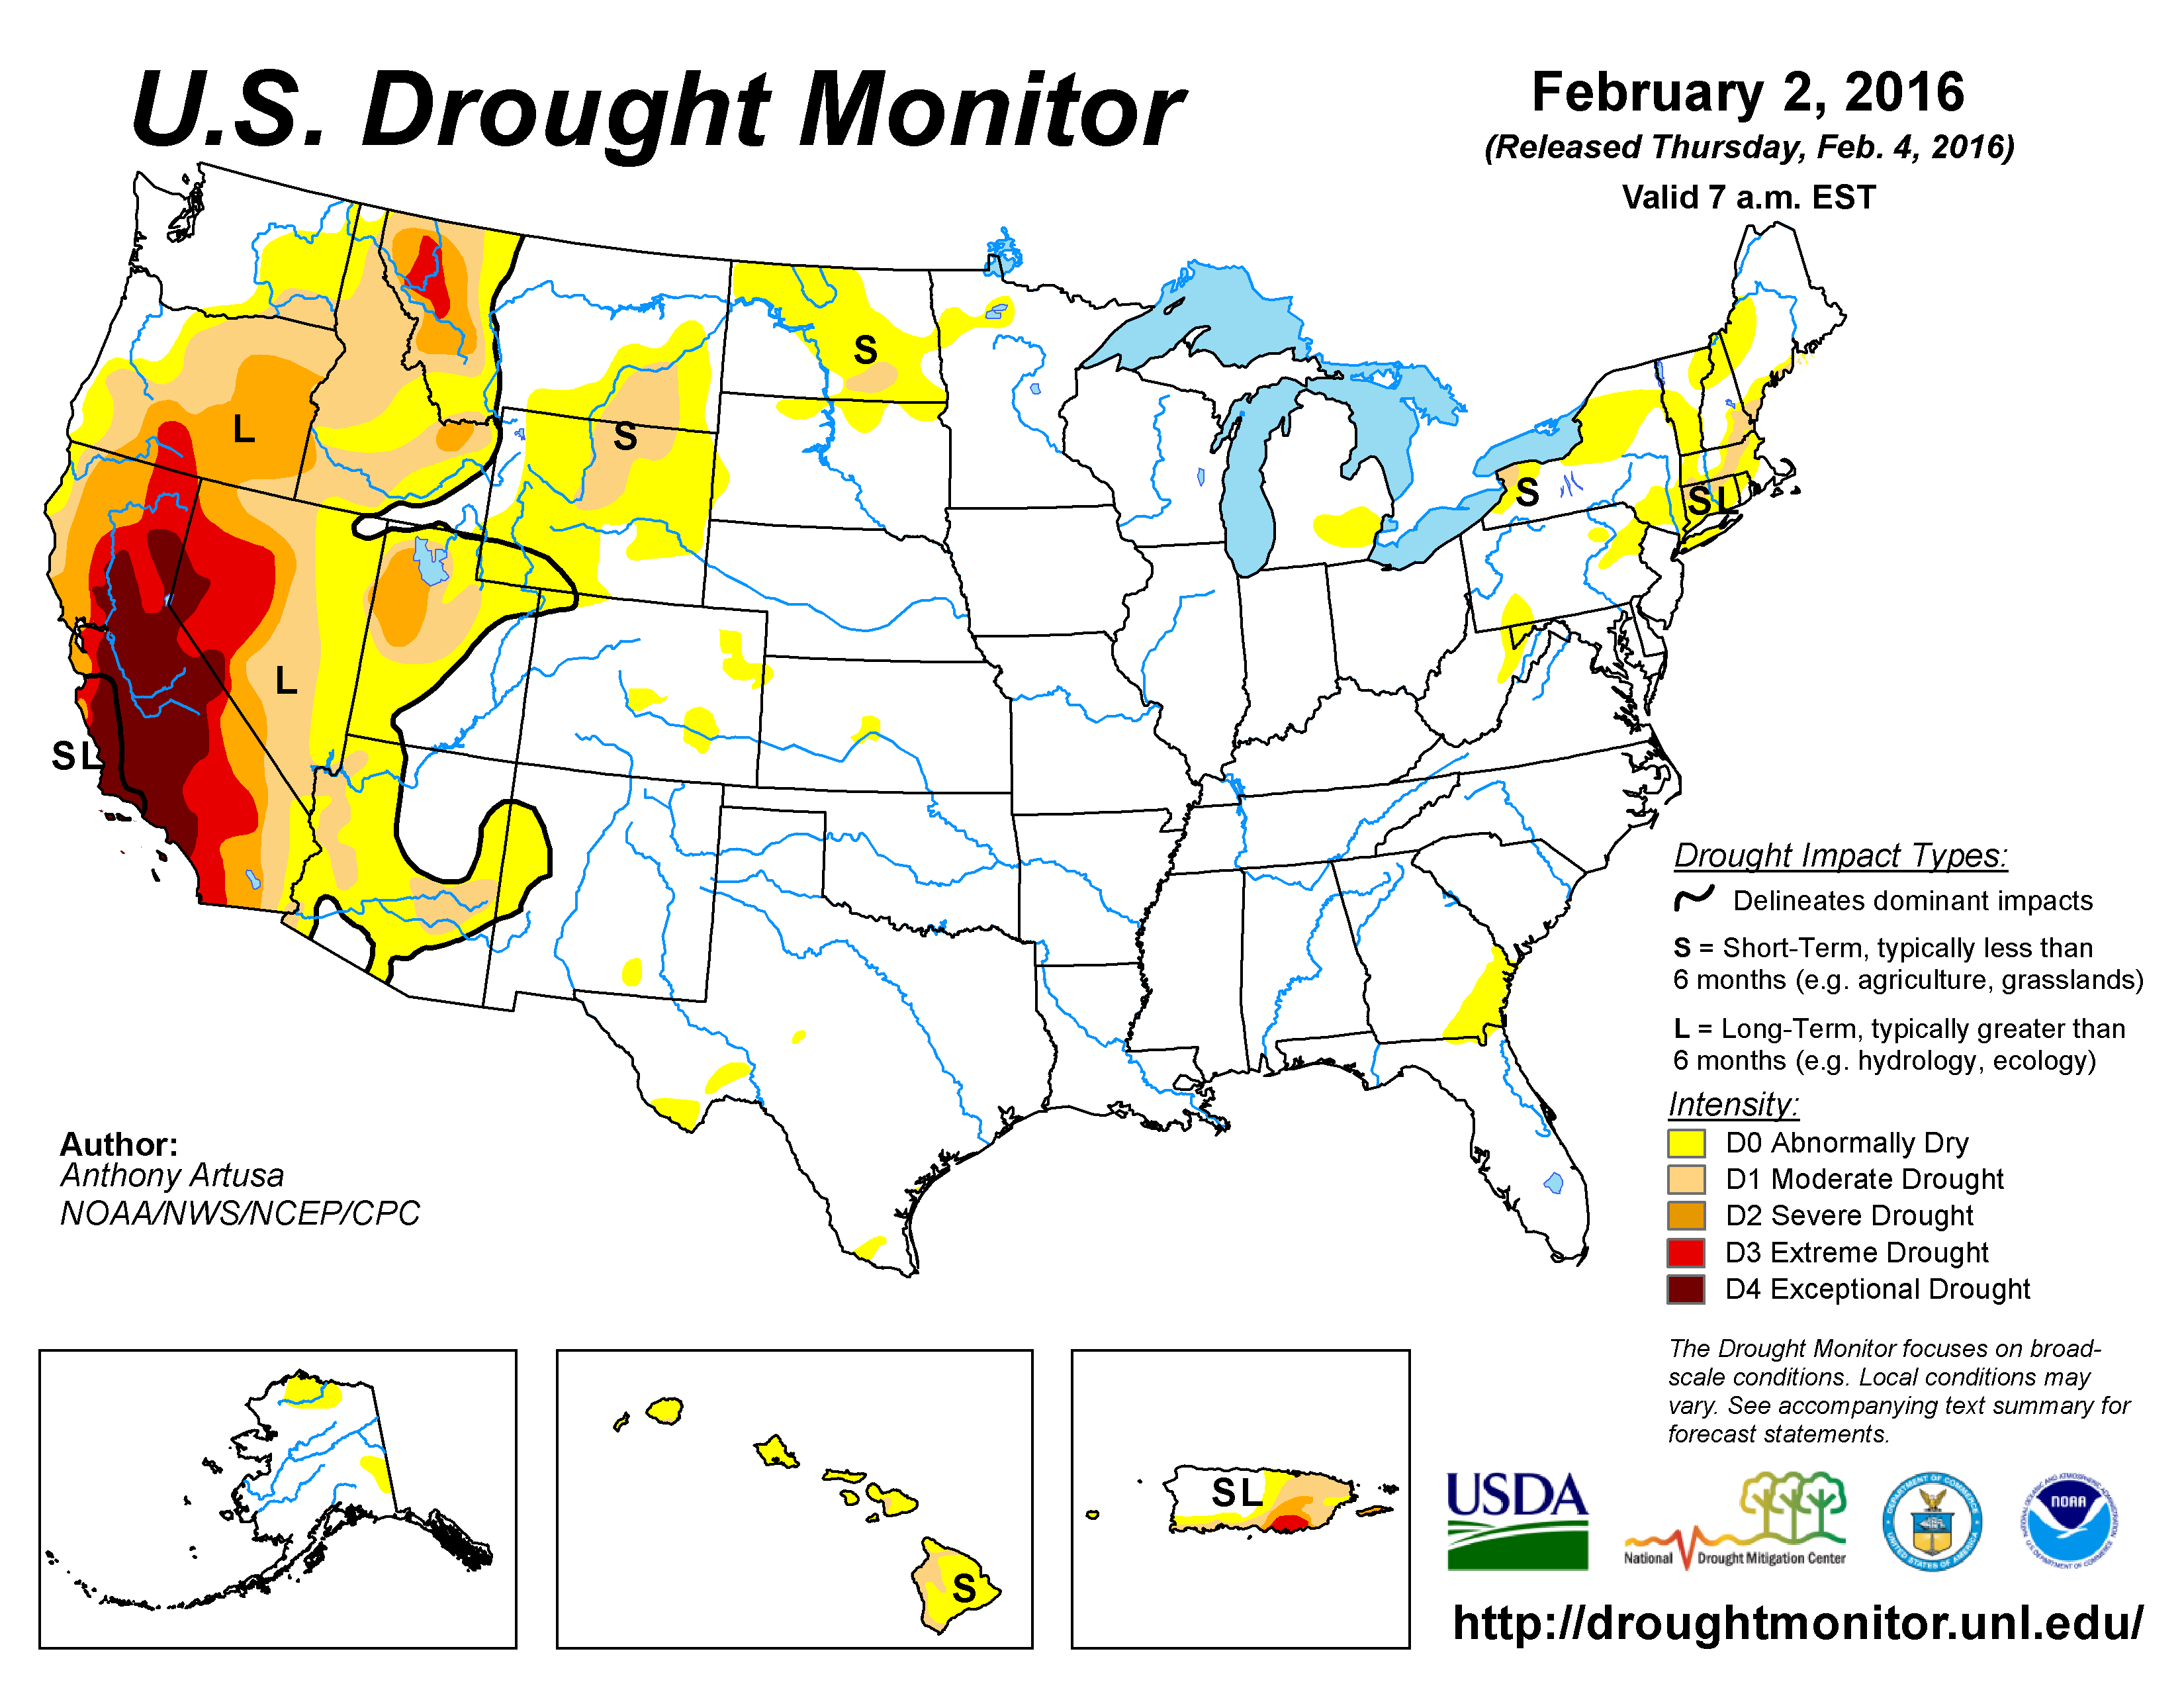 The U.S. Drought Monitor drought map valid February 2, 2016